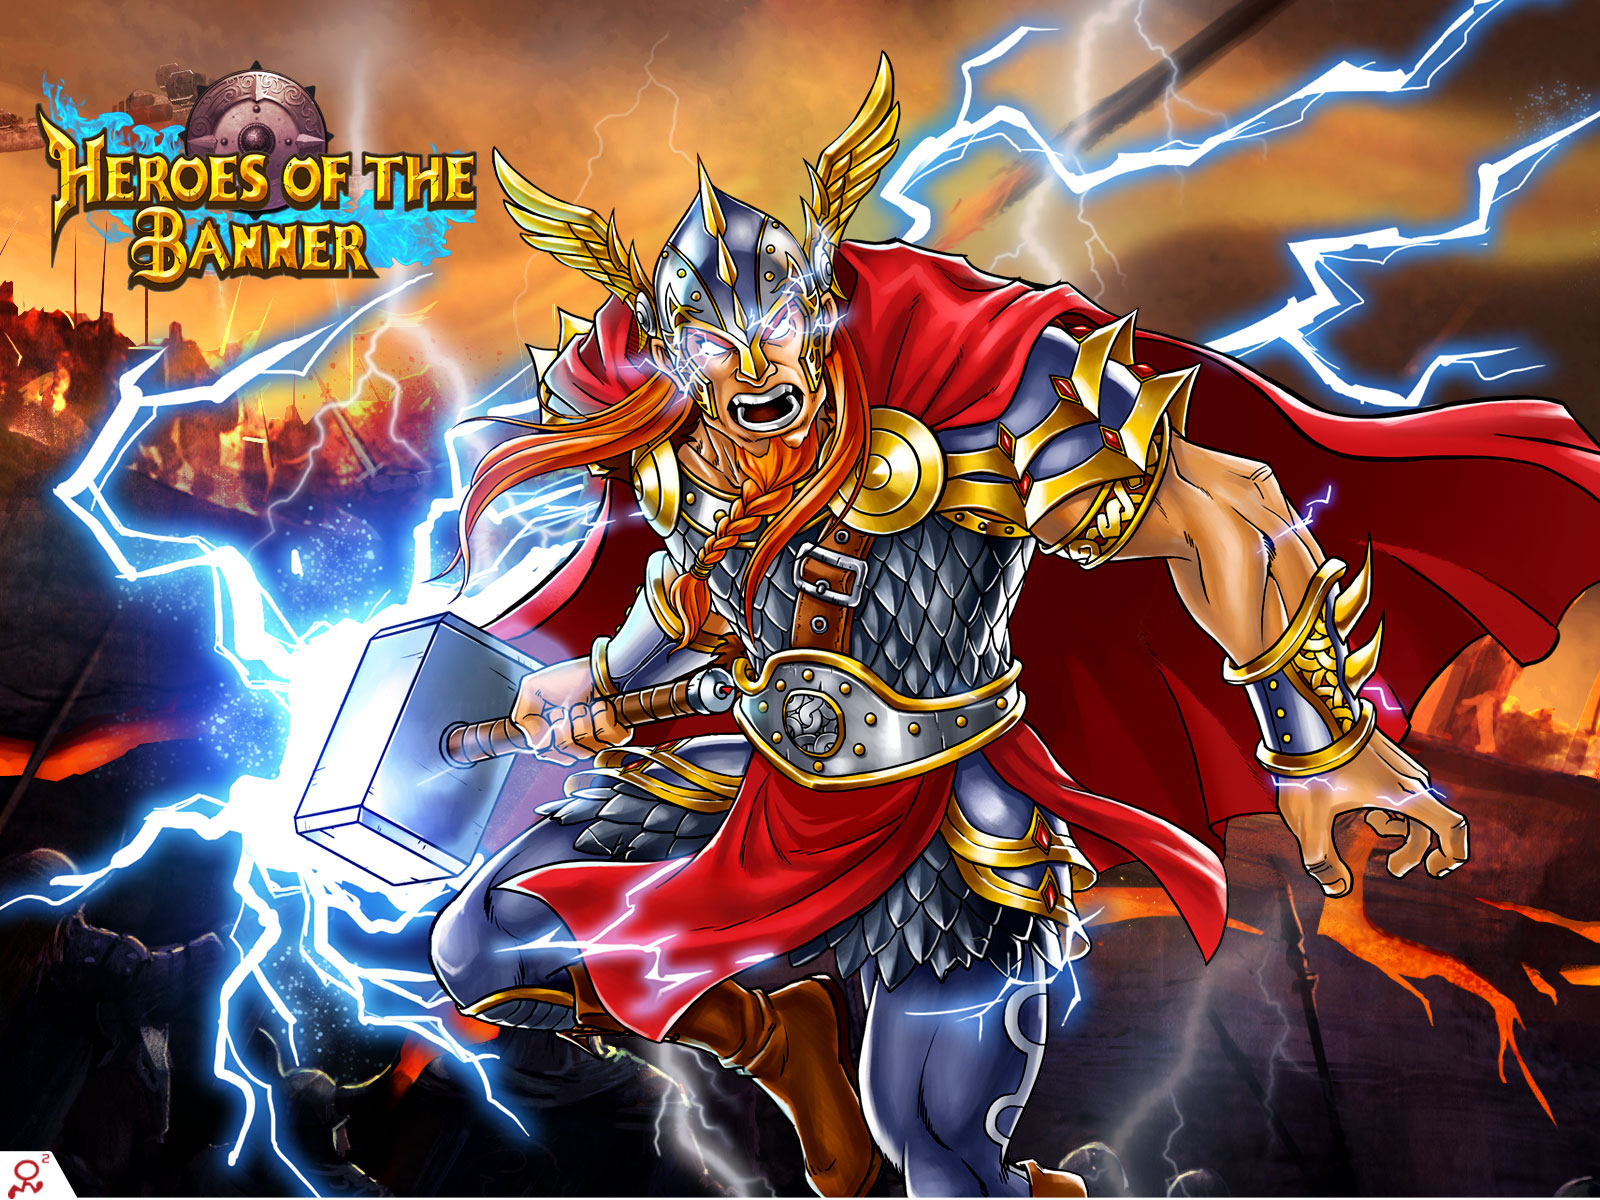 Heroes Of The Banner Backgrounds, Compatible - PC, Mobile, Gadgets| 1600x1200 px